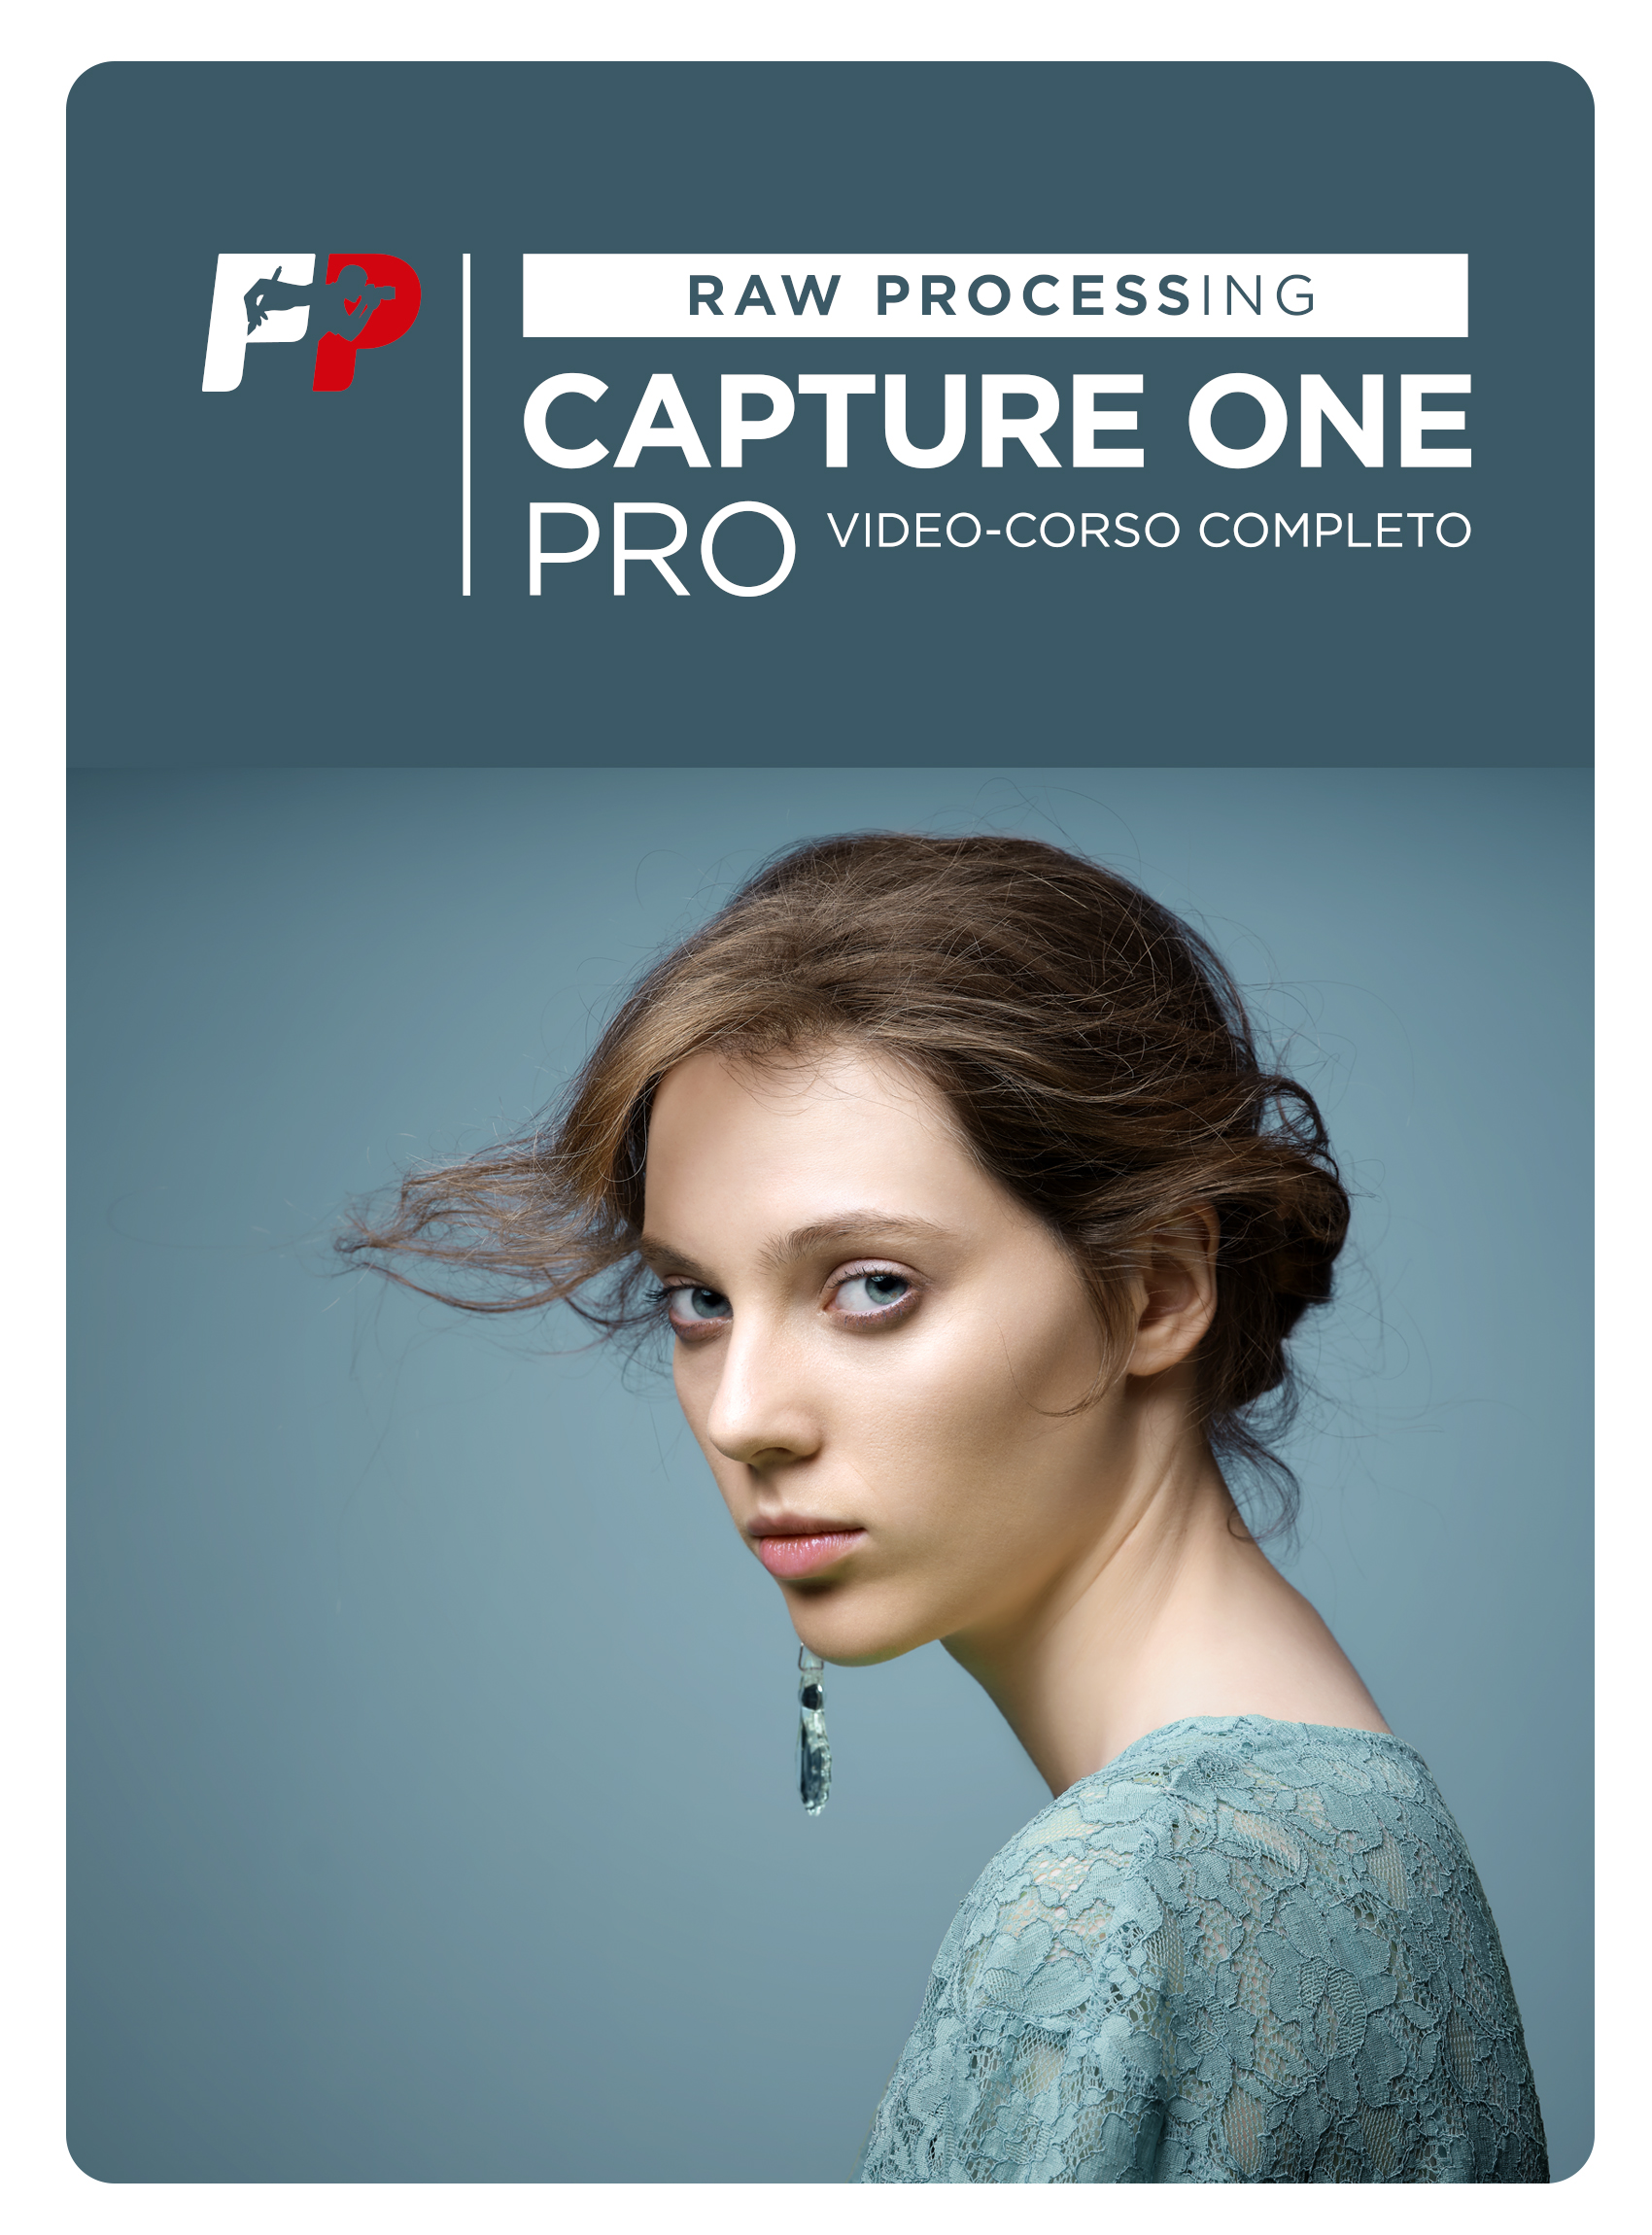 Raw Processing Capture One Pro